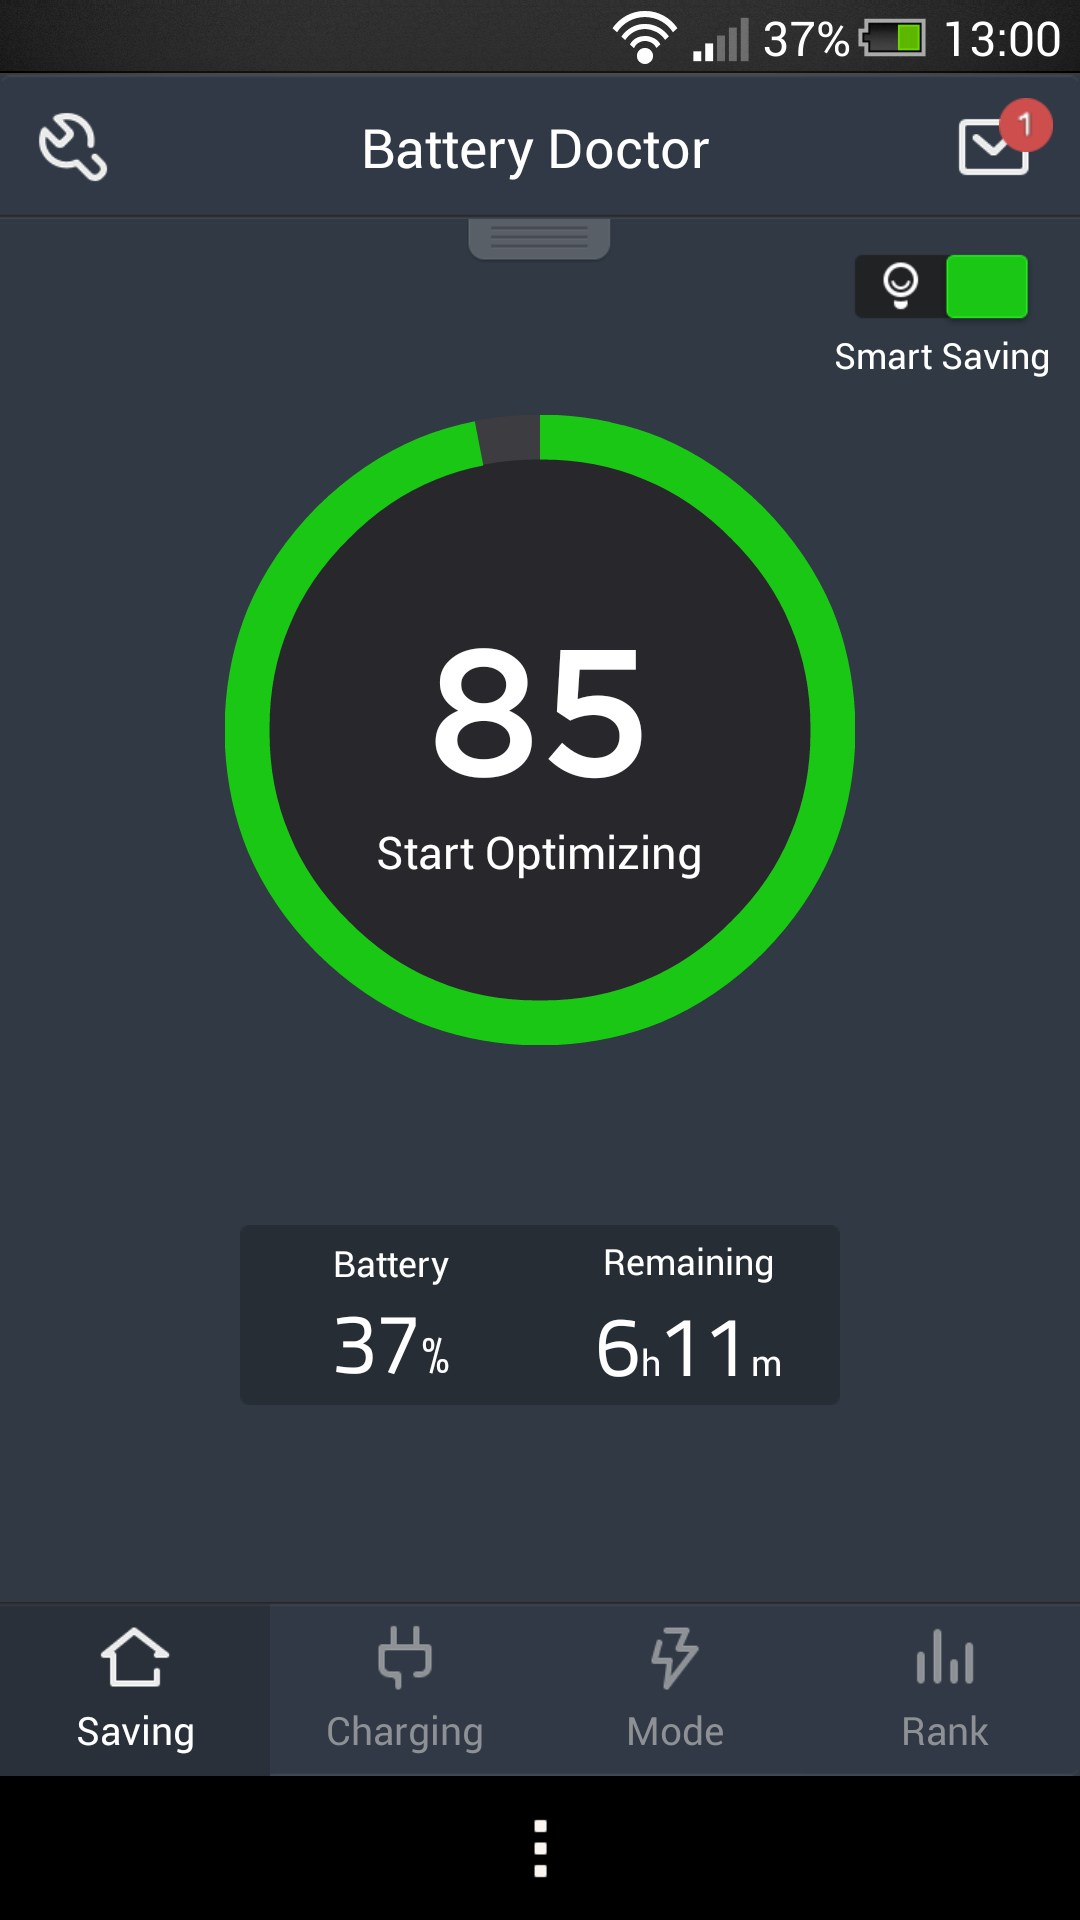 battery doctor apps para android 2018 baixe gr tis battery doctor maximizando sua bateria. Black Bedroom Furniture Sets. Home Design Ideas